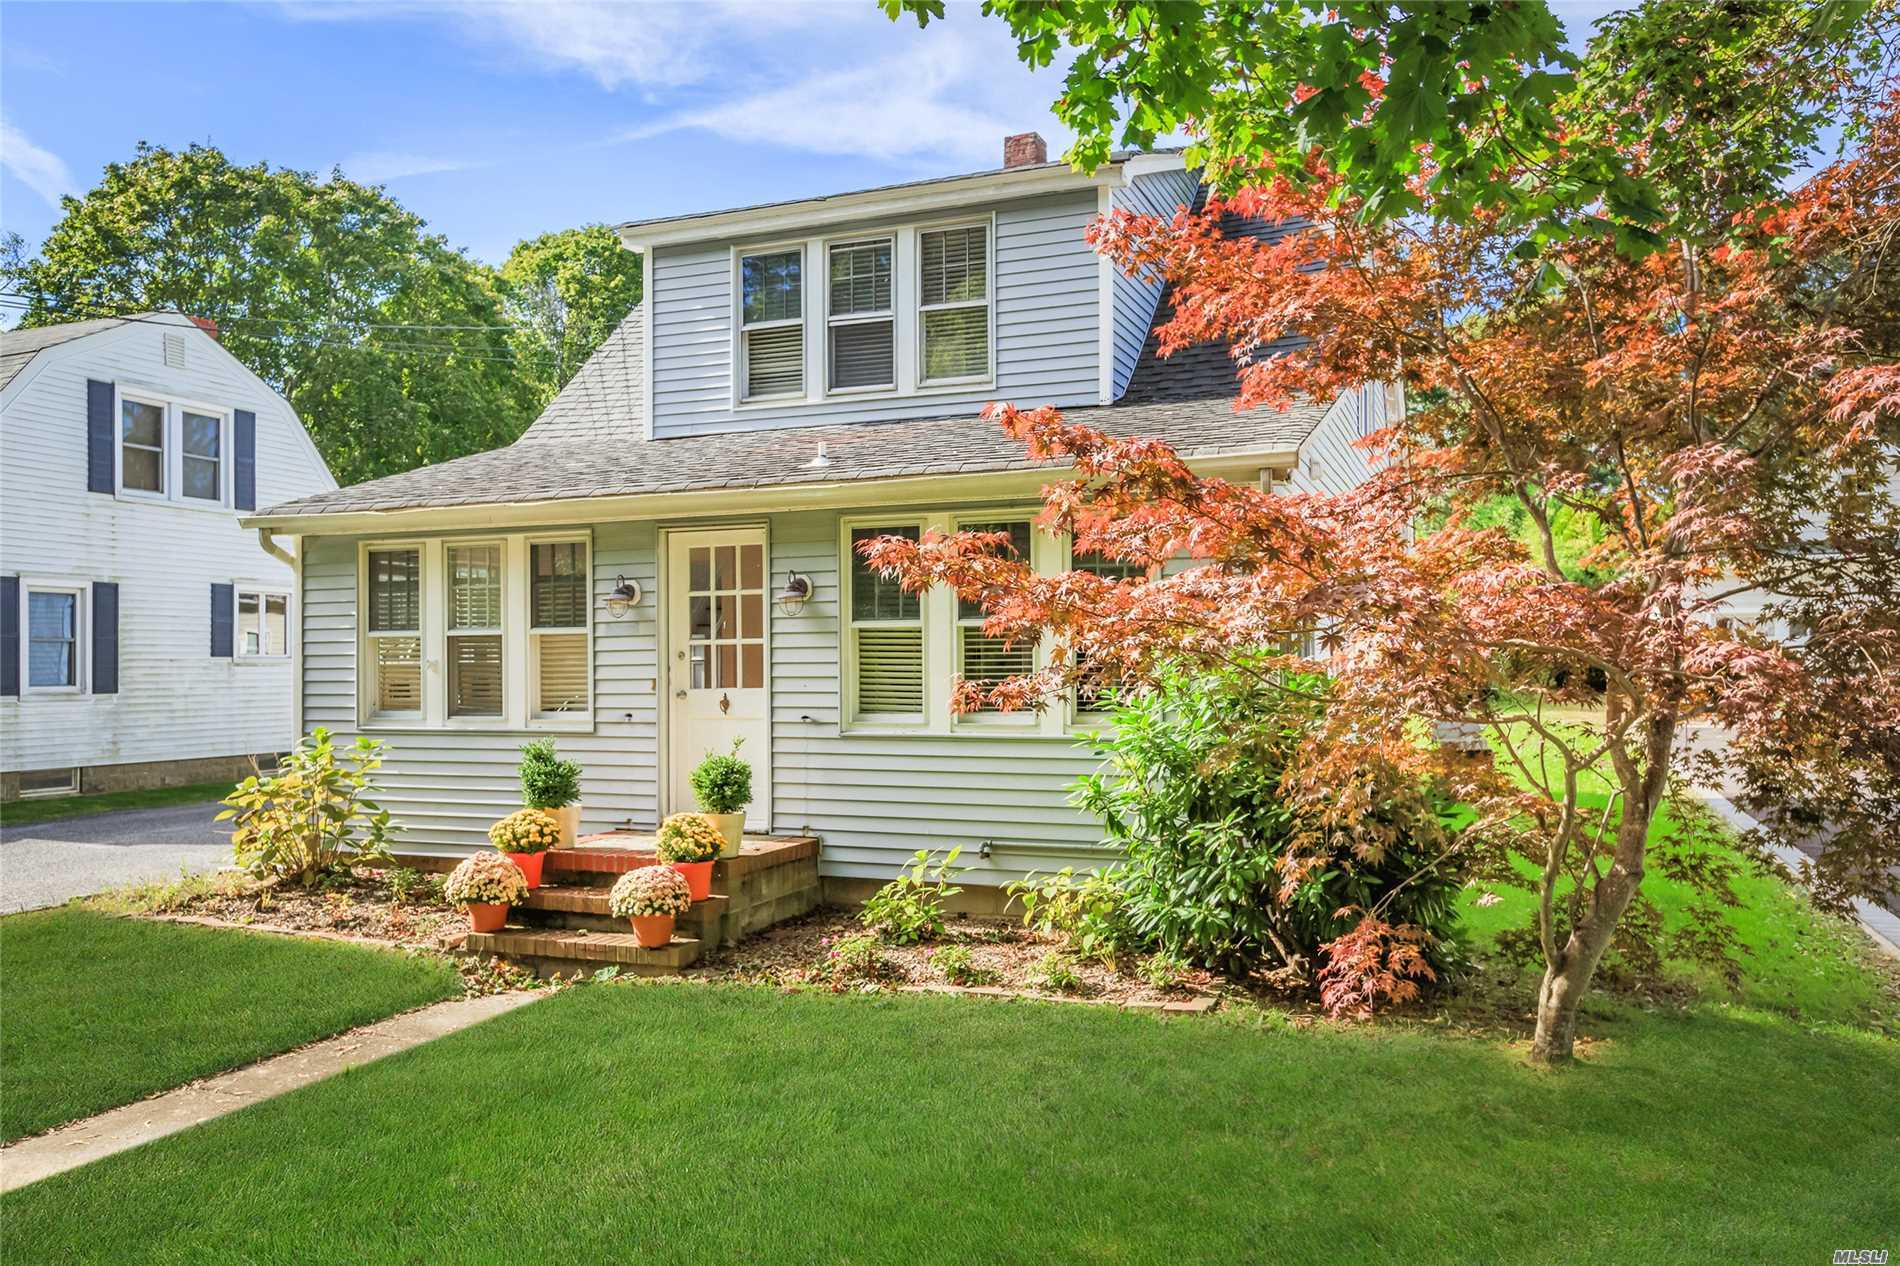 Wonderful 1940'S Cape In Sought After New Suffolk!! 3Br, 2Ba, Living Room, Formal Dining Room, Spacious Kitchen, Front Sun Porch, Full Basement, Area For Wine Cellar, Detached One Car Garage, Easily Maintained Property.